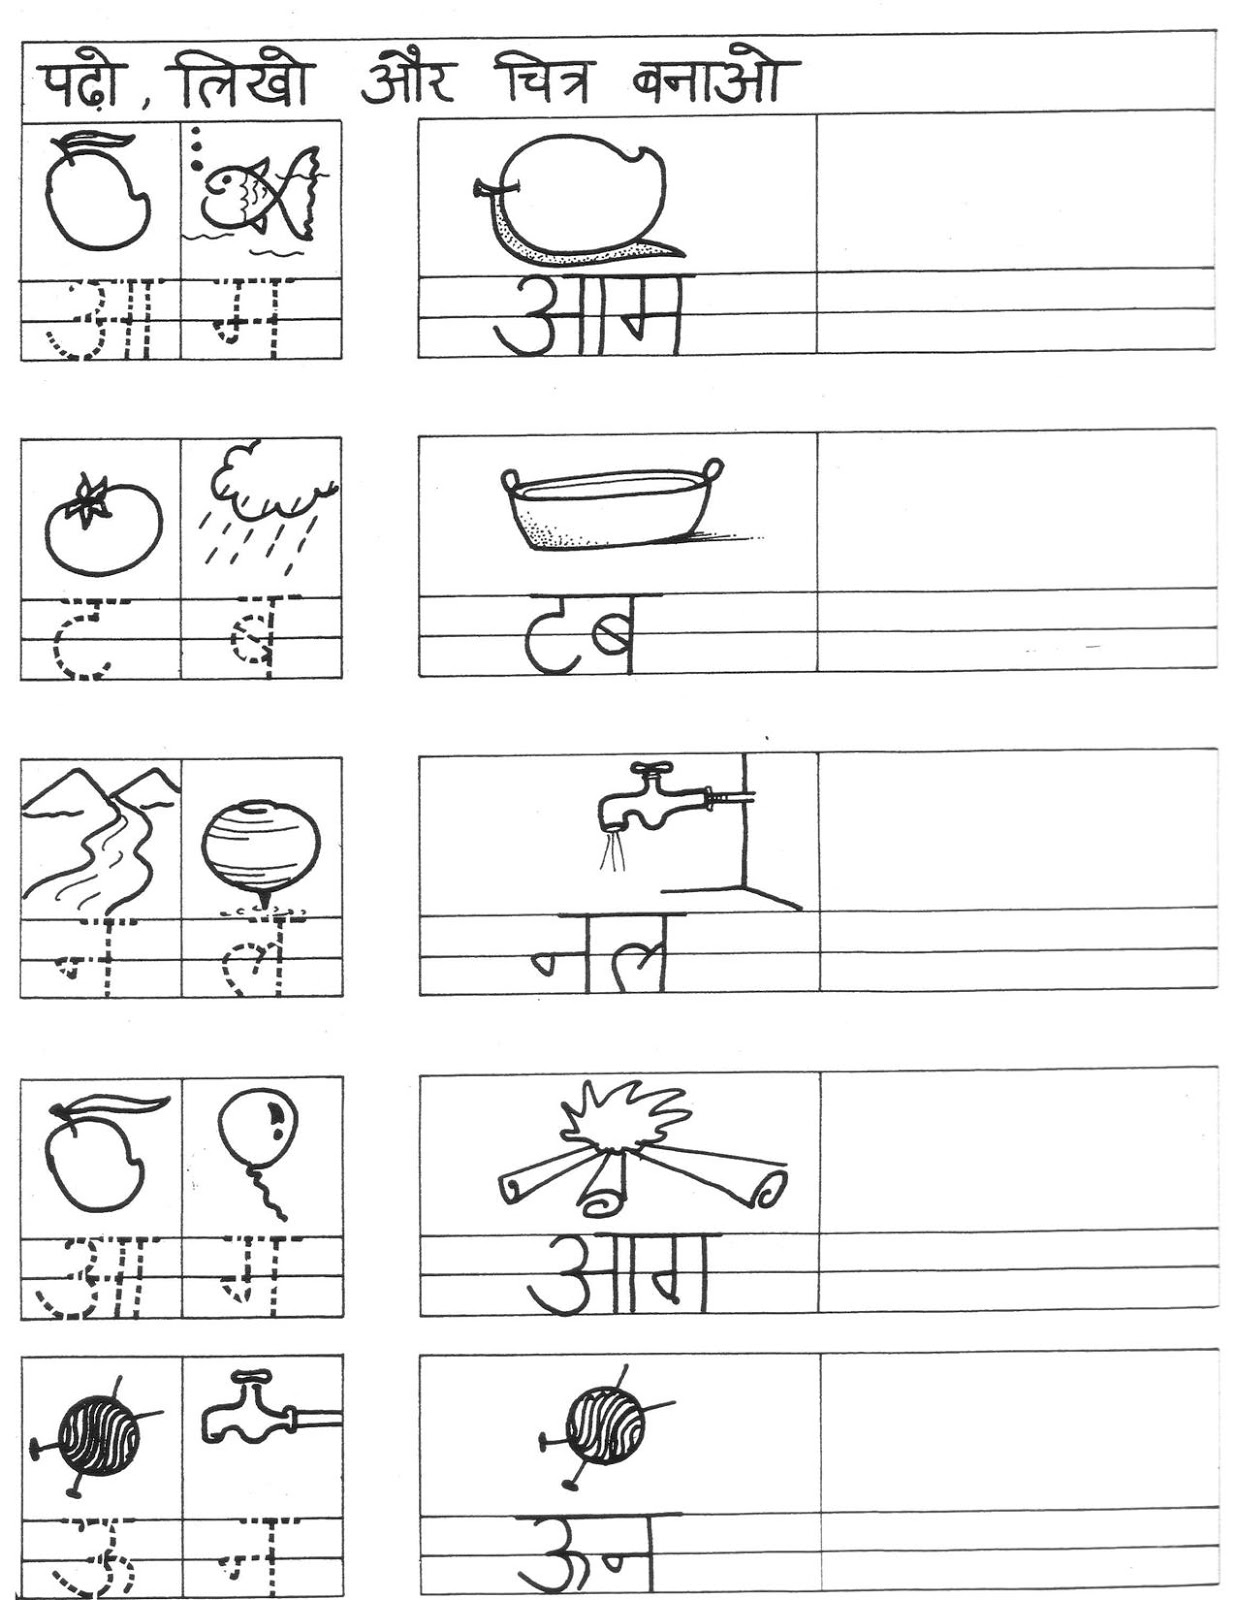 Hindi Worksheet For Primary